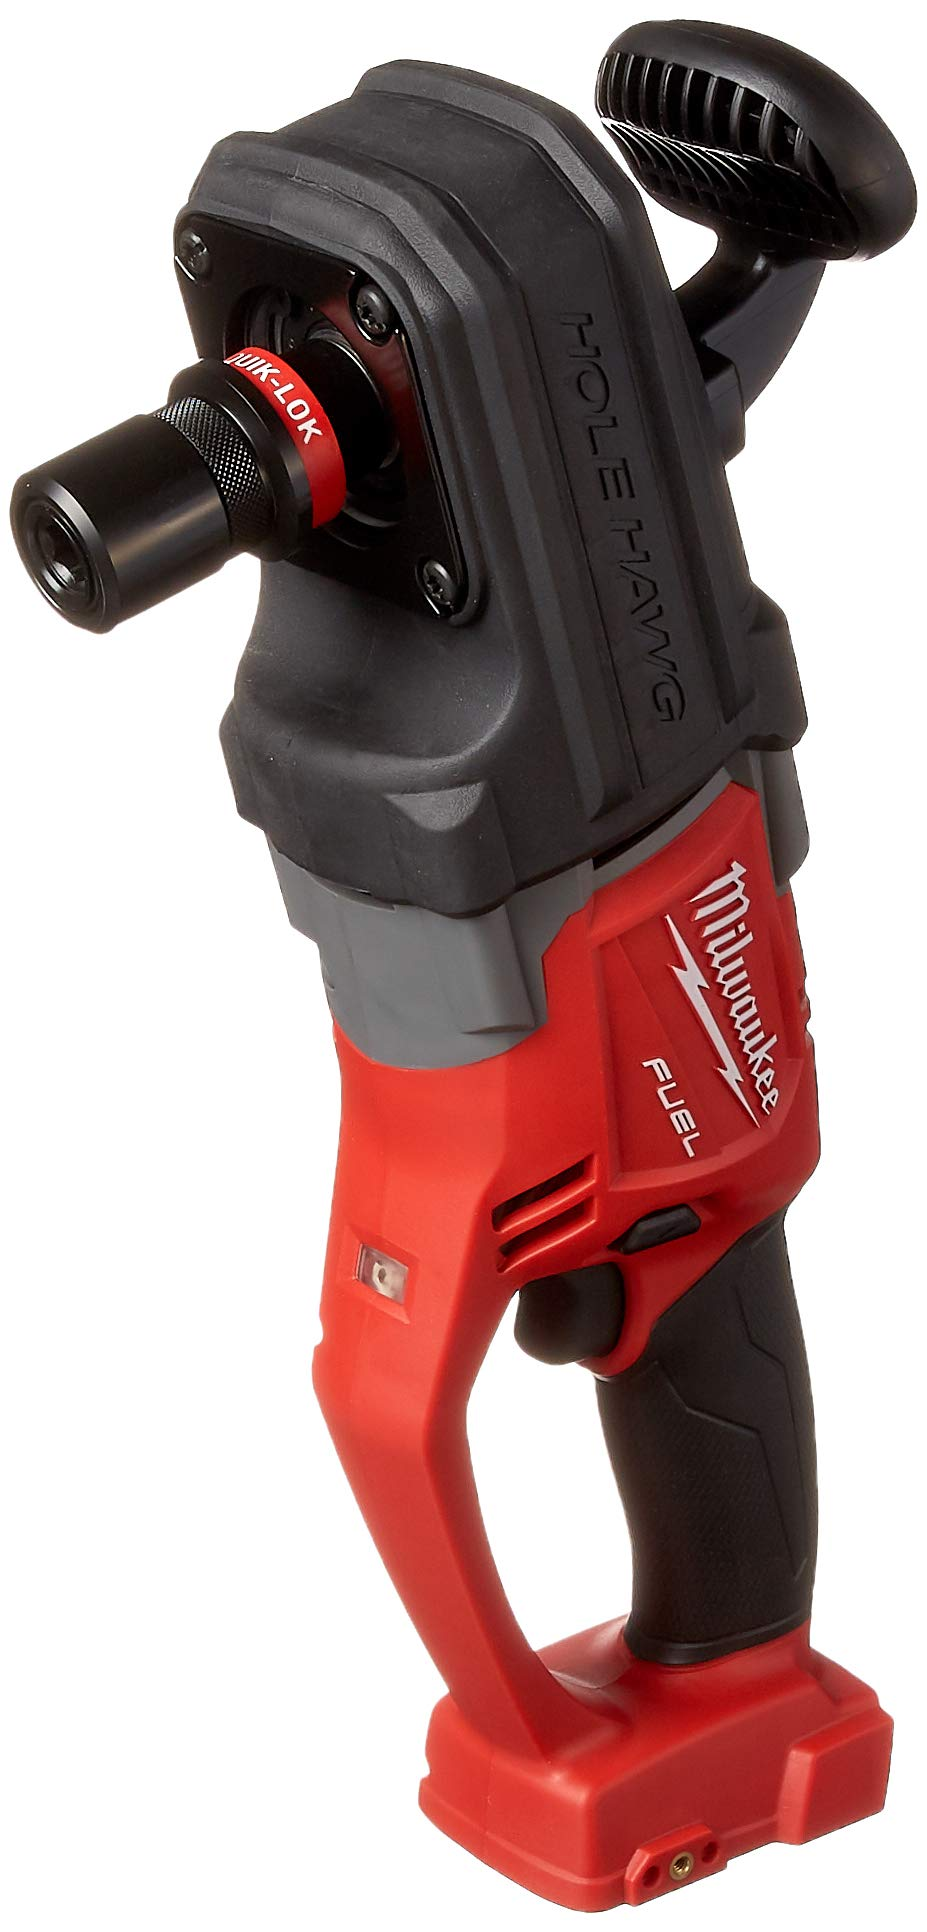 Milwaukee 2708-20 M18 Fuel Hole Hawg Right Angle Drill with Quik-Lok Bare by Milwaukee